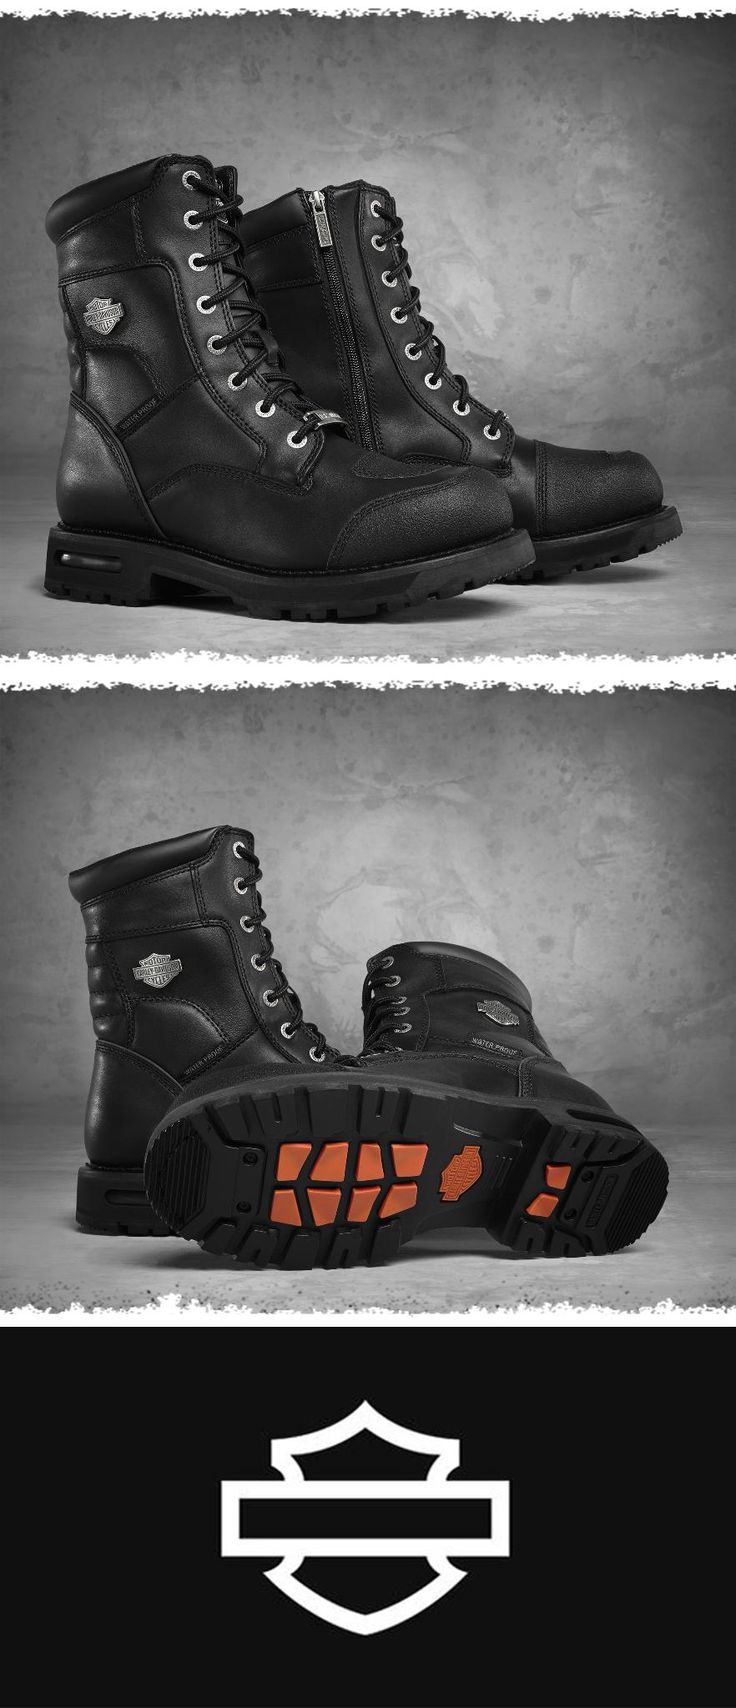 The rugged look and great quality will be the perfect addition to your riding collection. | Harley-Davidson Men's Richfield Waterproof Performance Boots #FathersDay